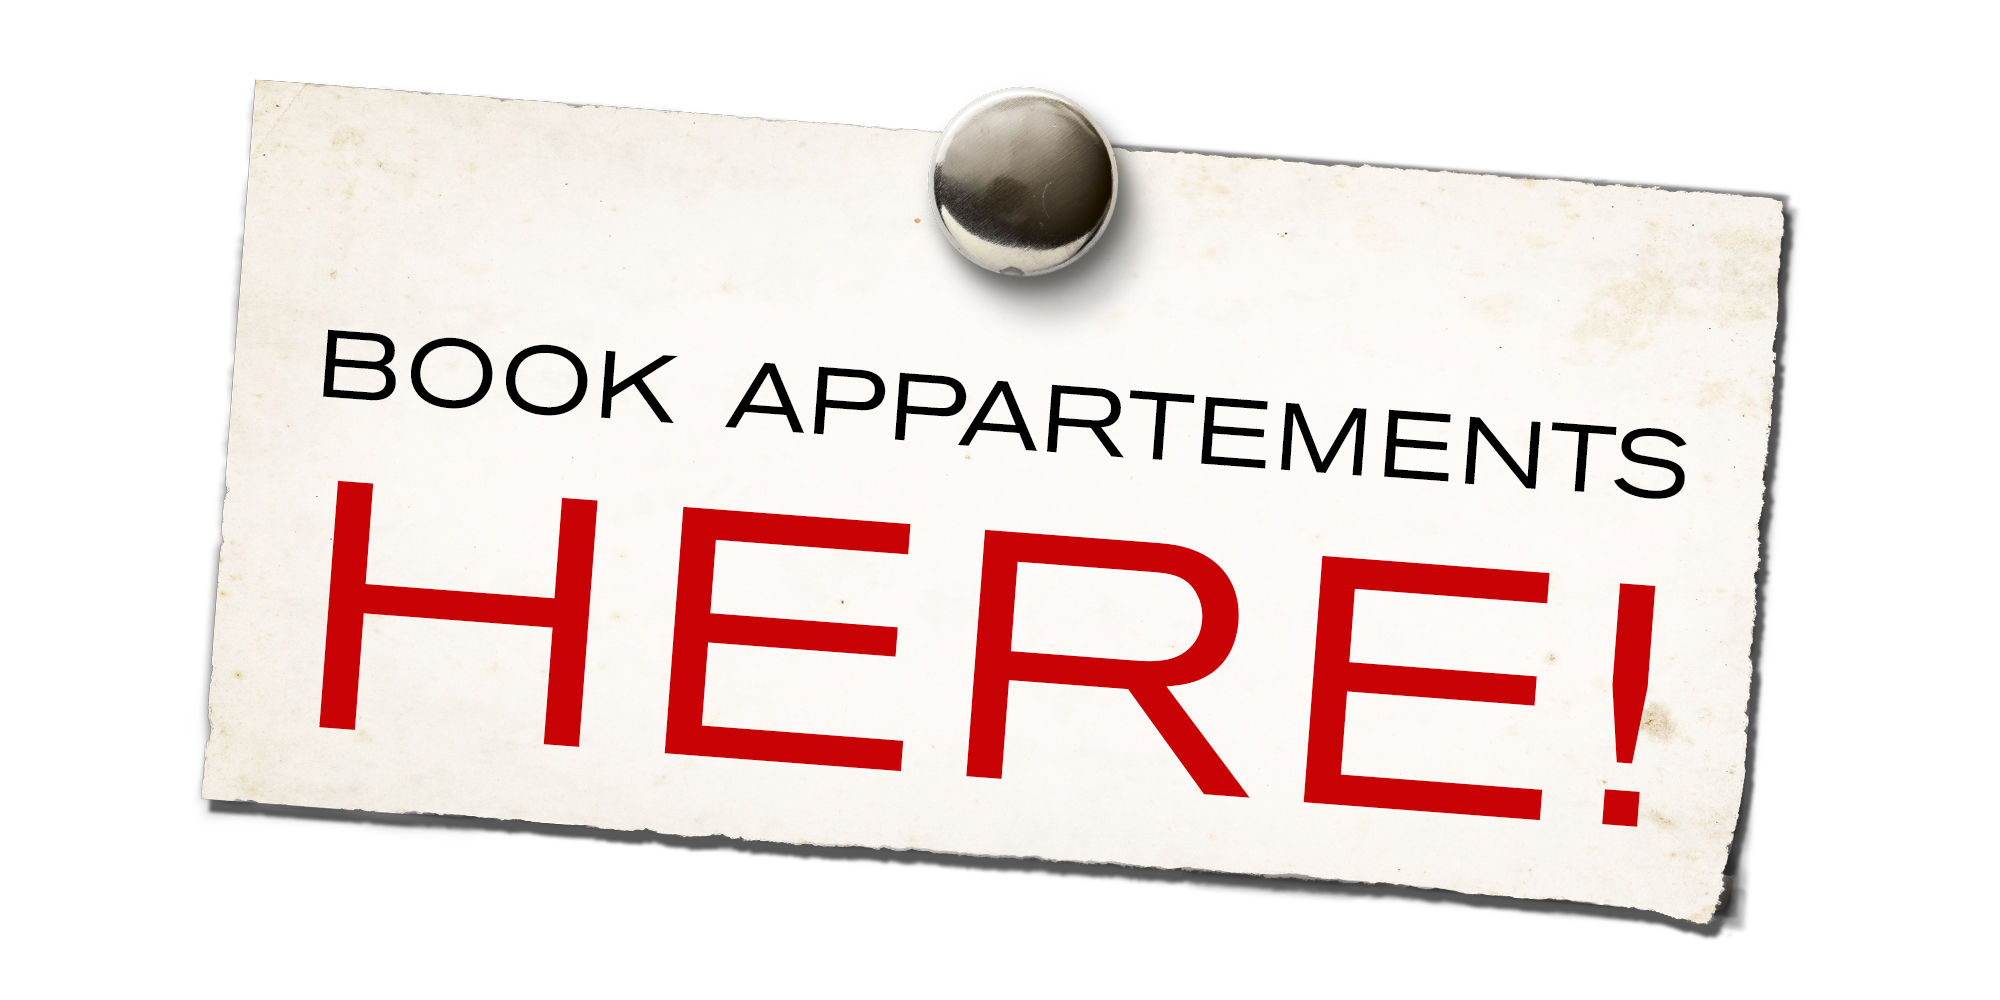 Book Apartments here Saas-Fee